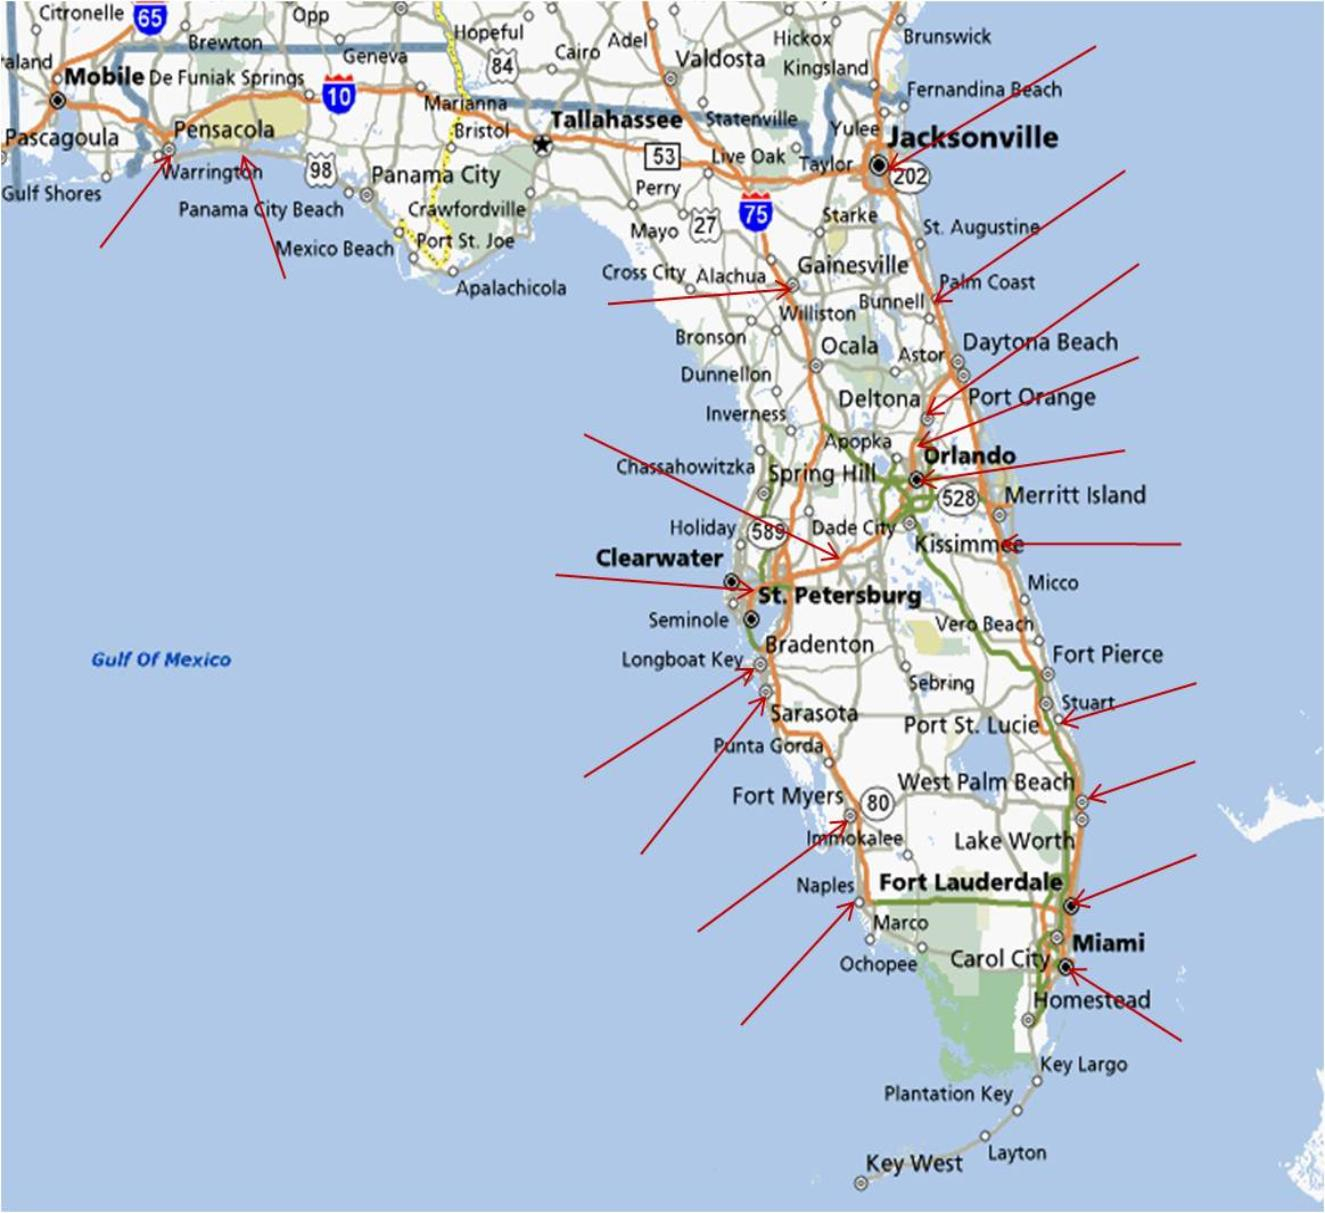 Map Of Florida Running Stores - Where Is Palm Coast Florida On The Map